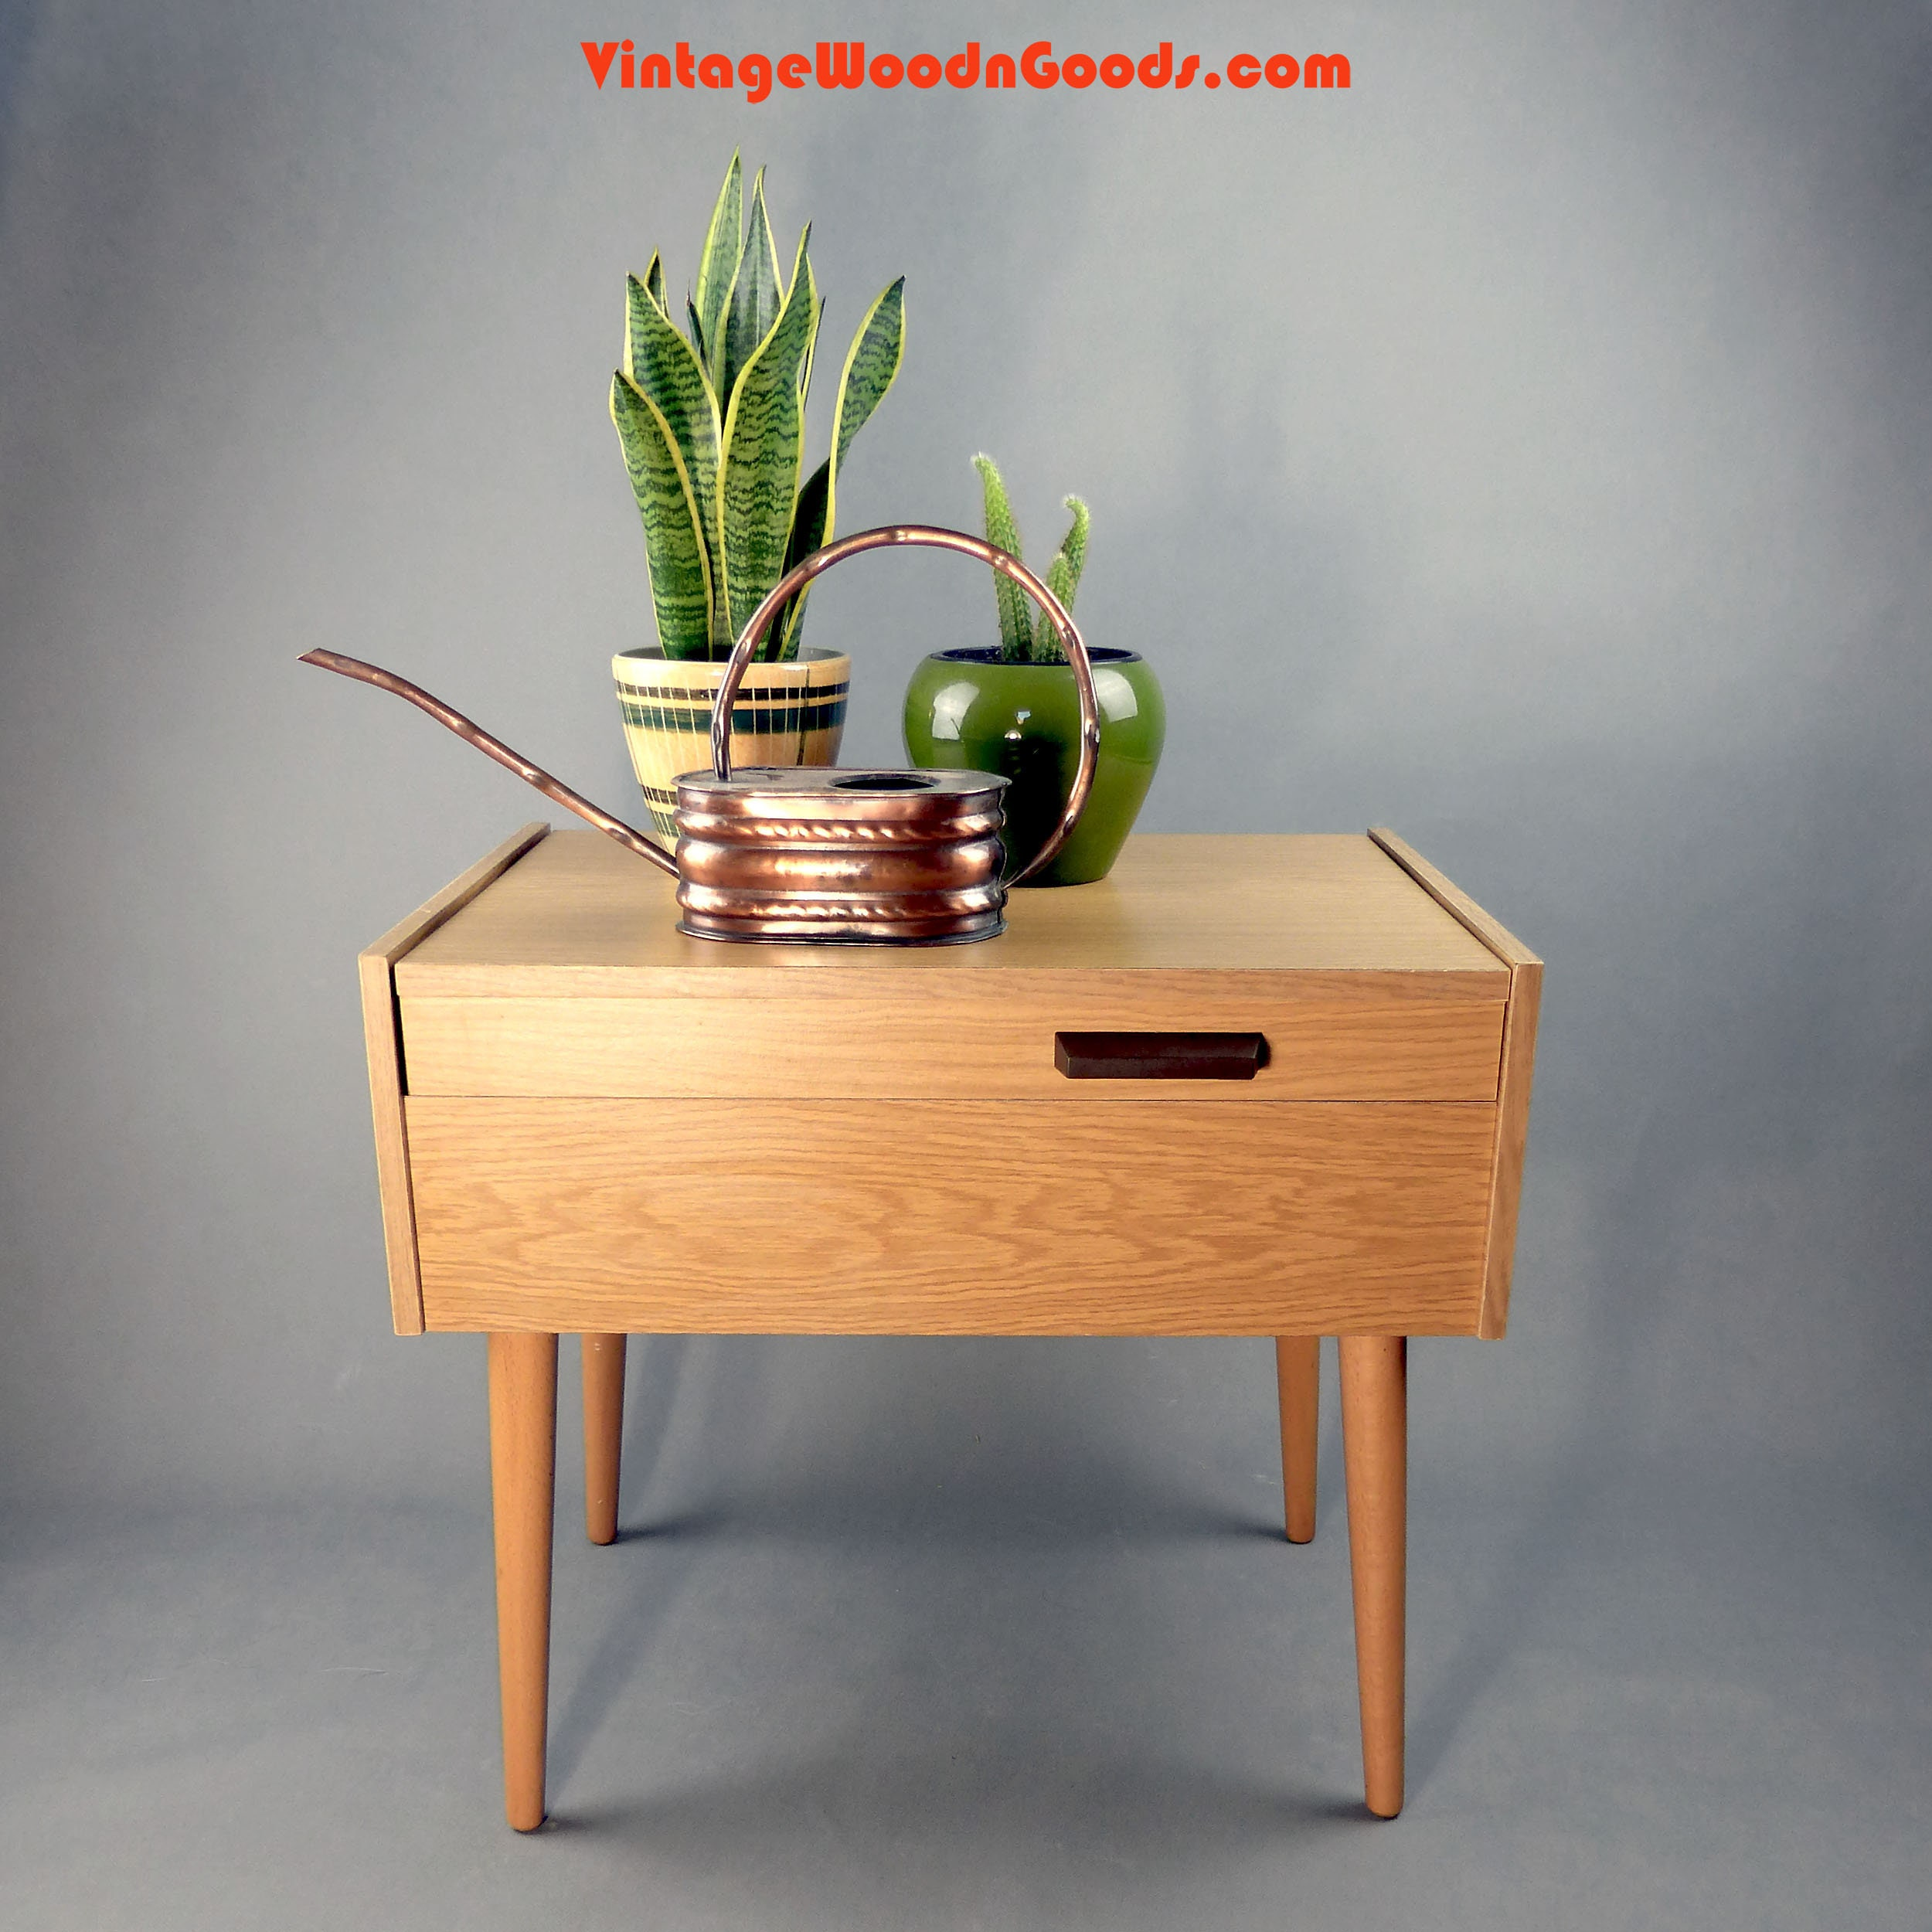 10a11a61e Vintage SIDE Table SEWING BOX 1960s on feet, string era coffee table  bedside table plant stand wooden jewelry box, knitting basket organizer